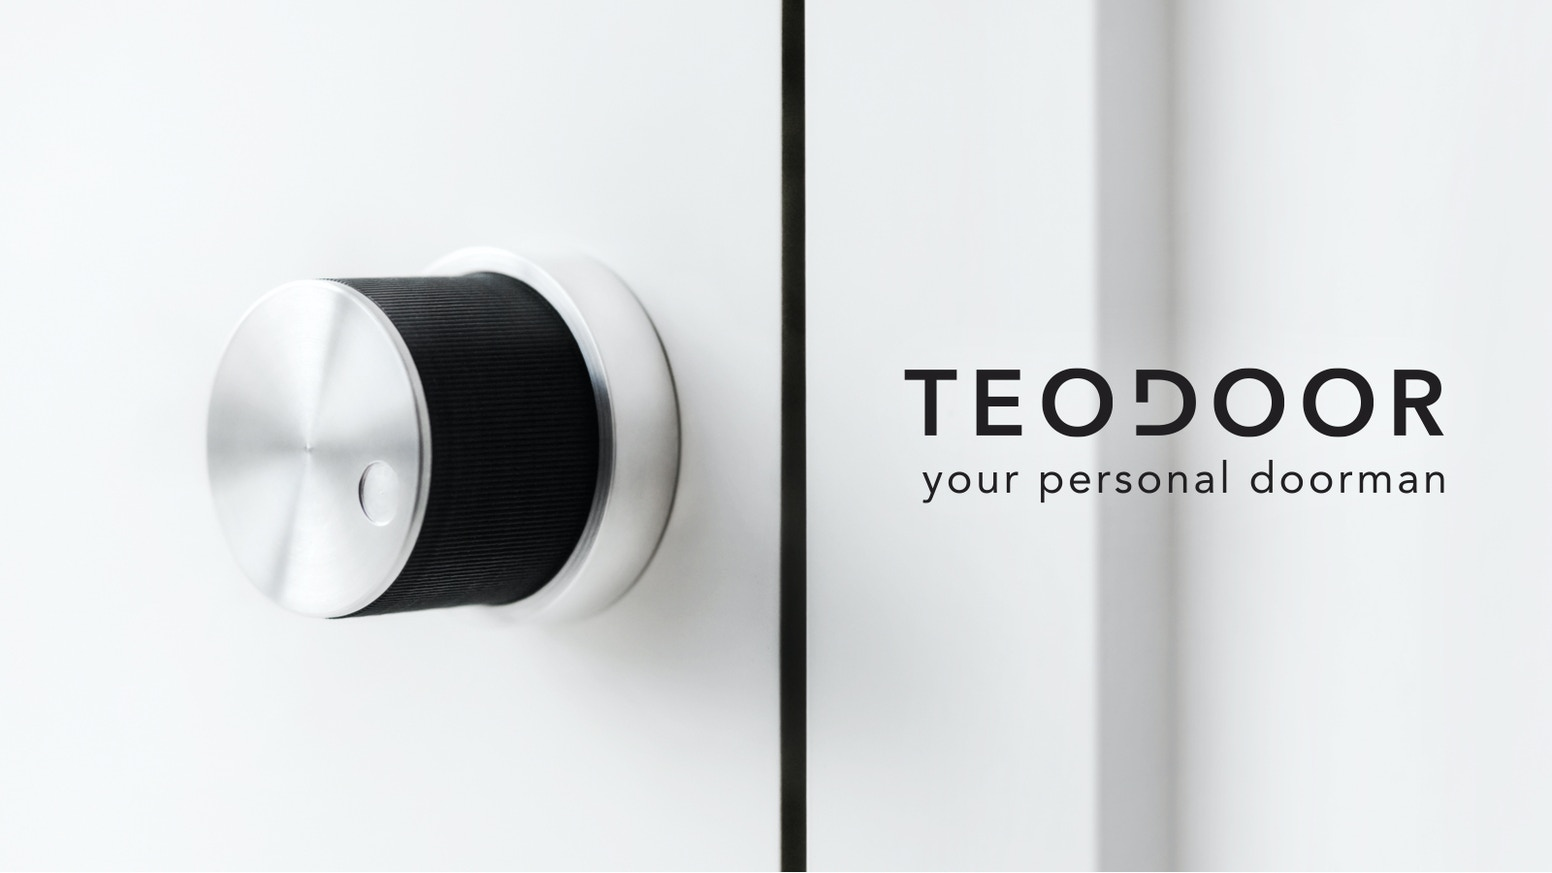 Teodoor is a reliable and secure Bluetooth operated smart lock. It fits perfectly on the inside of your door lock in seconds.